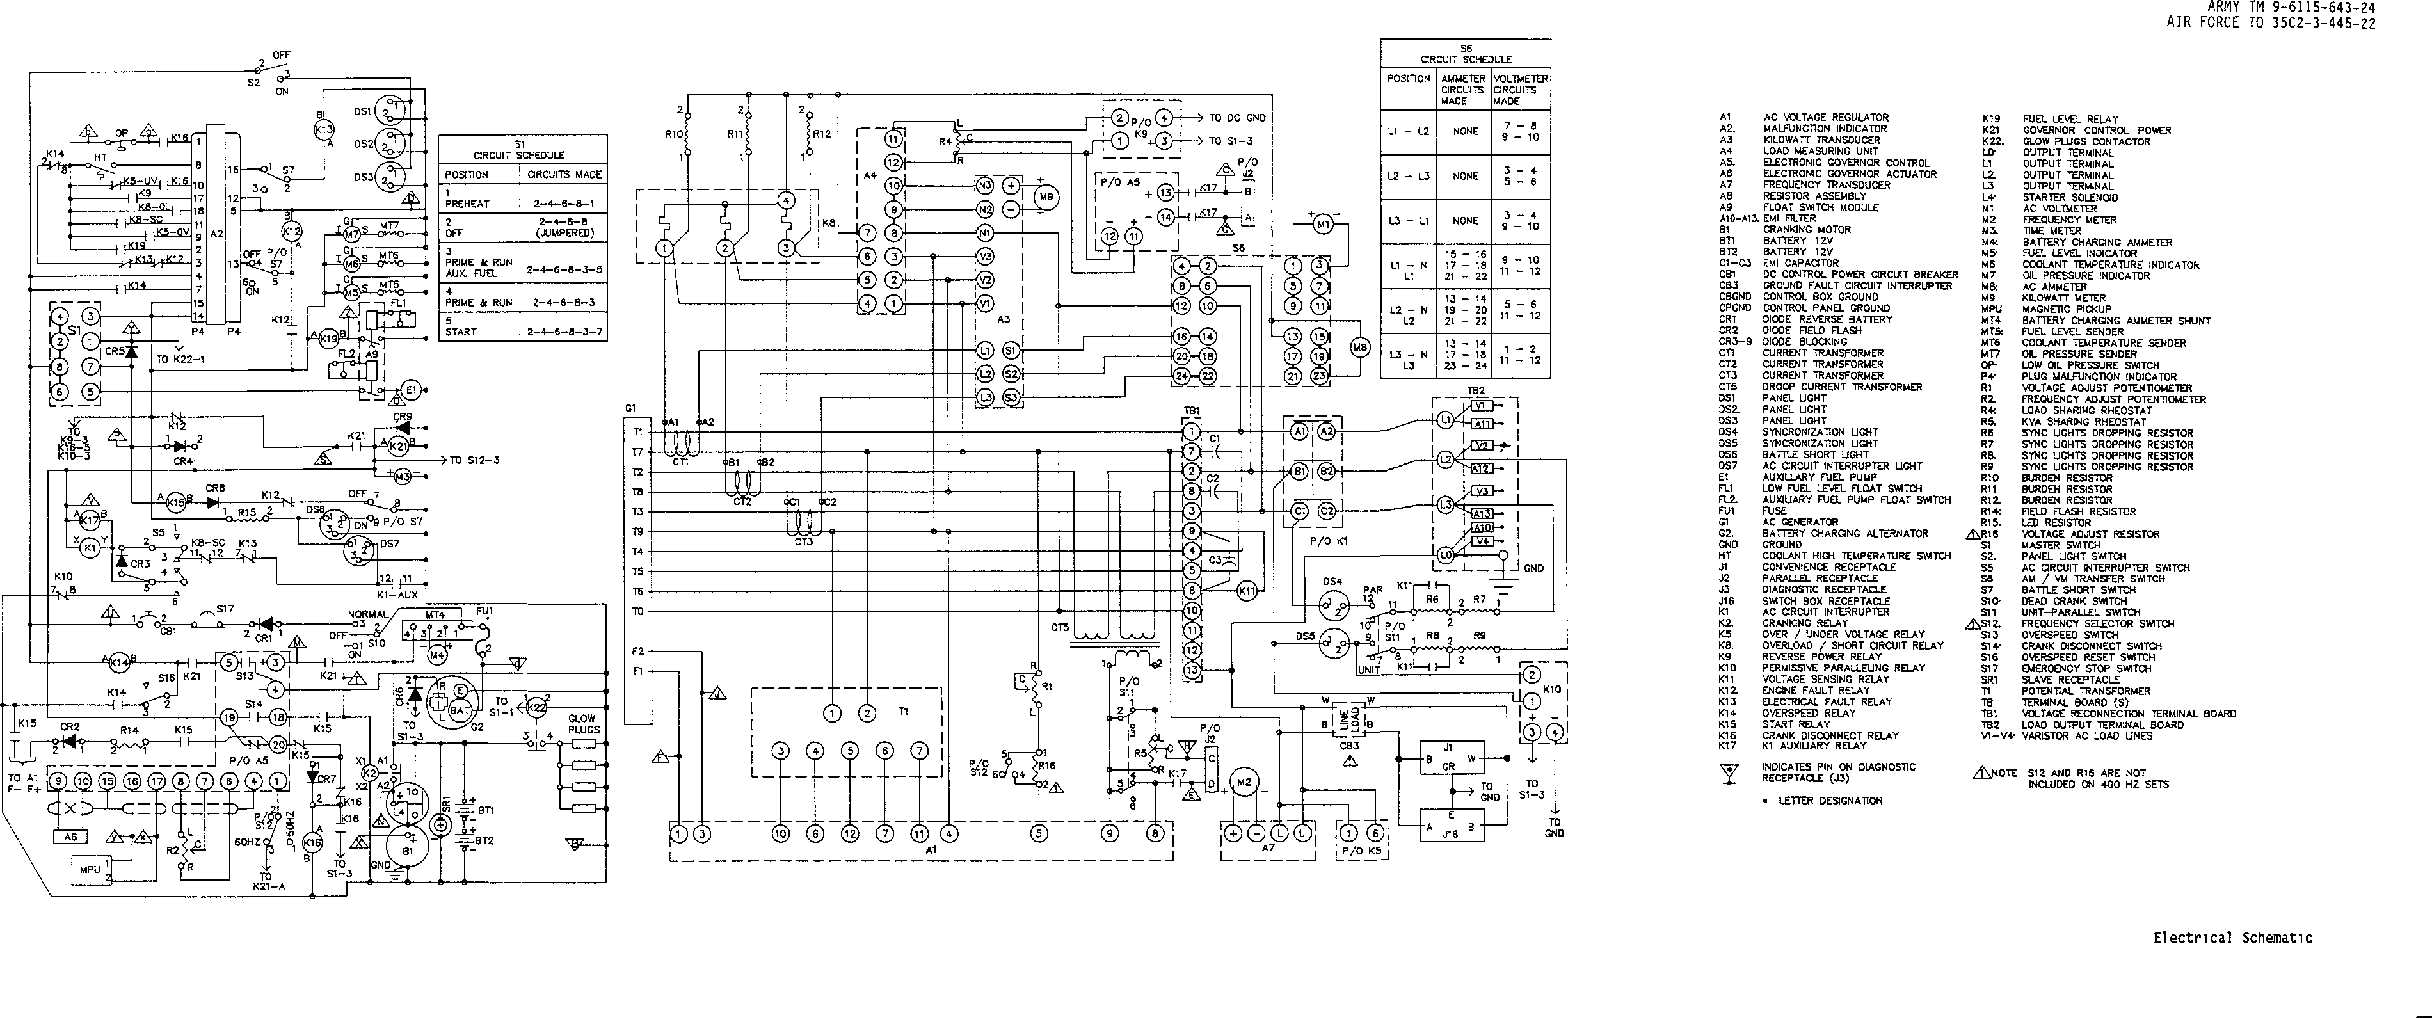 Fo 1 Electrical Schematic